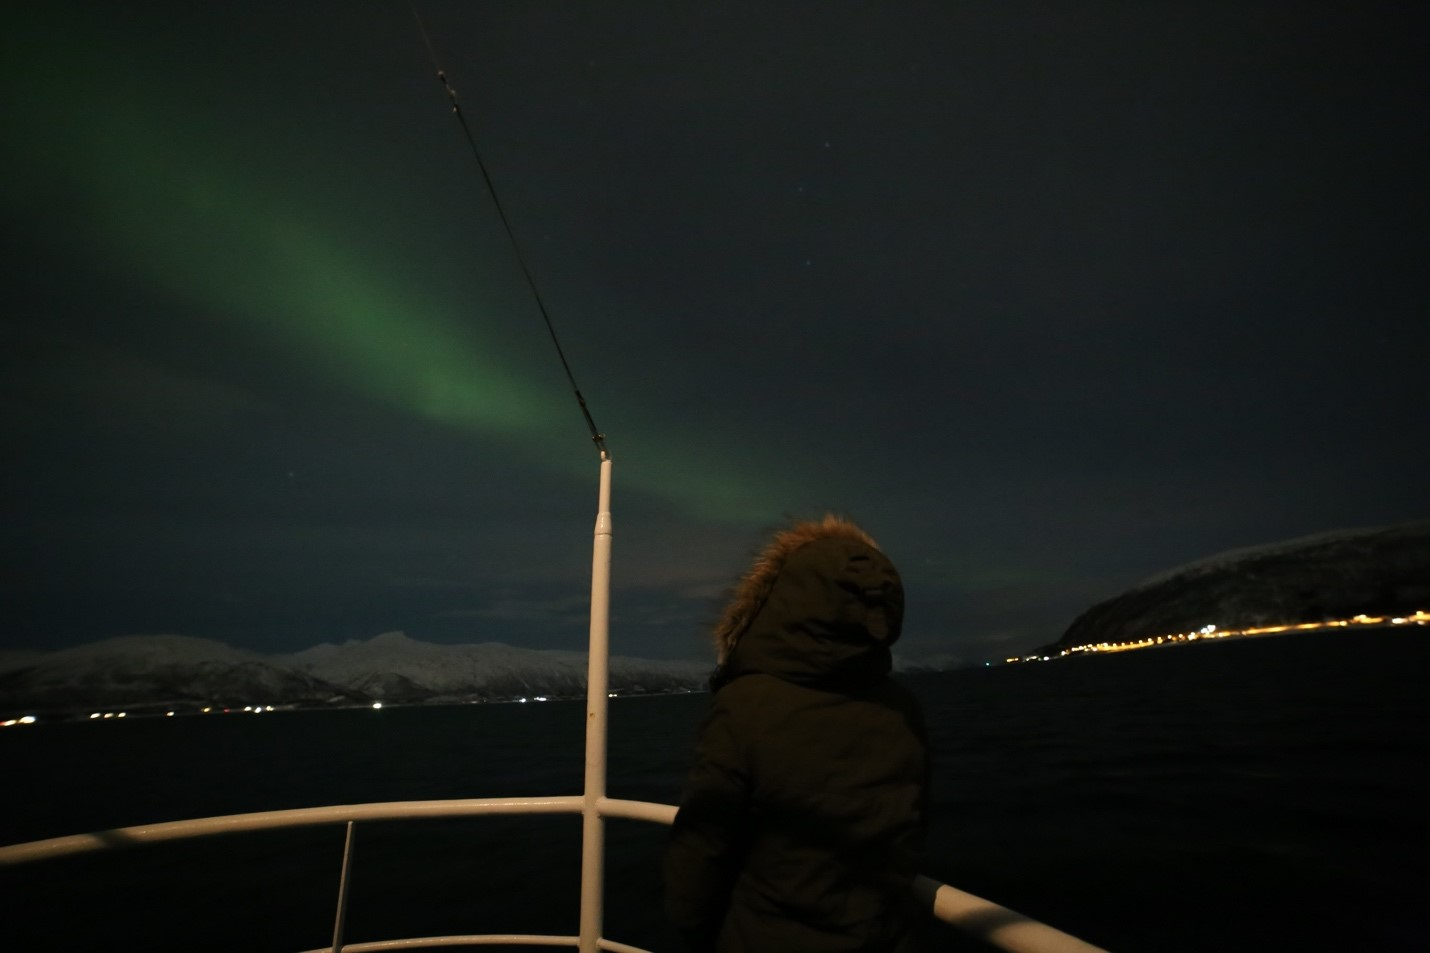 Miriam on a boat overlooking the Northern Lights.